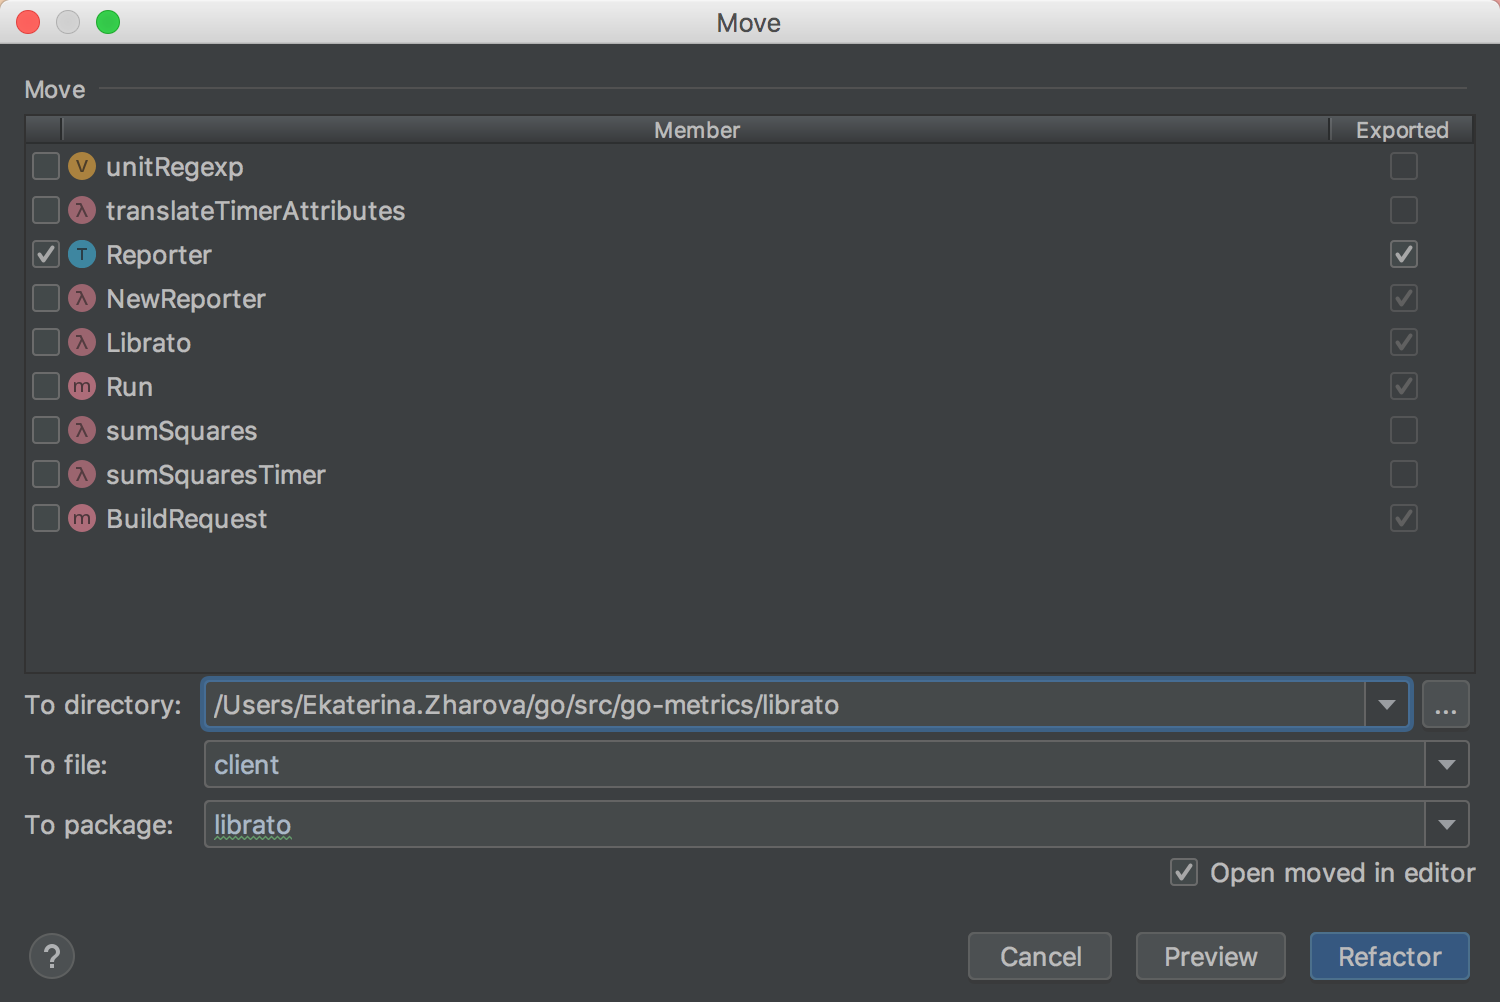 The new Move Refactoring dialog